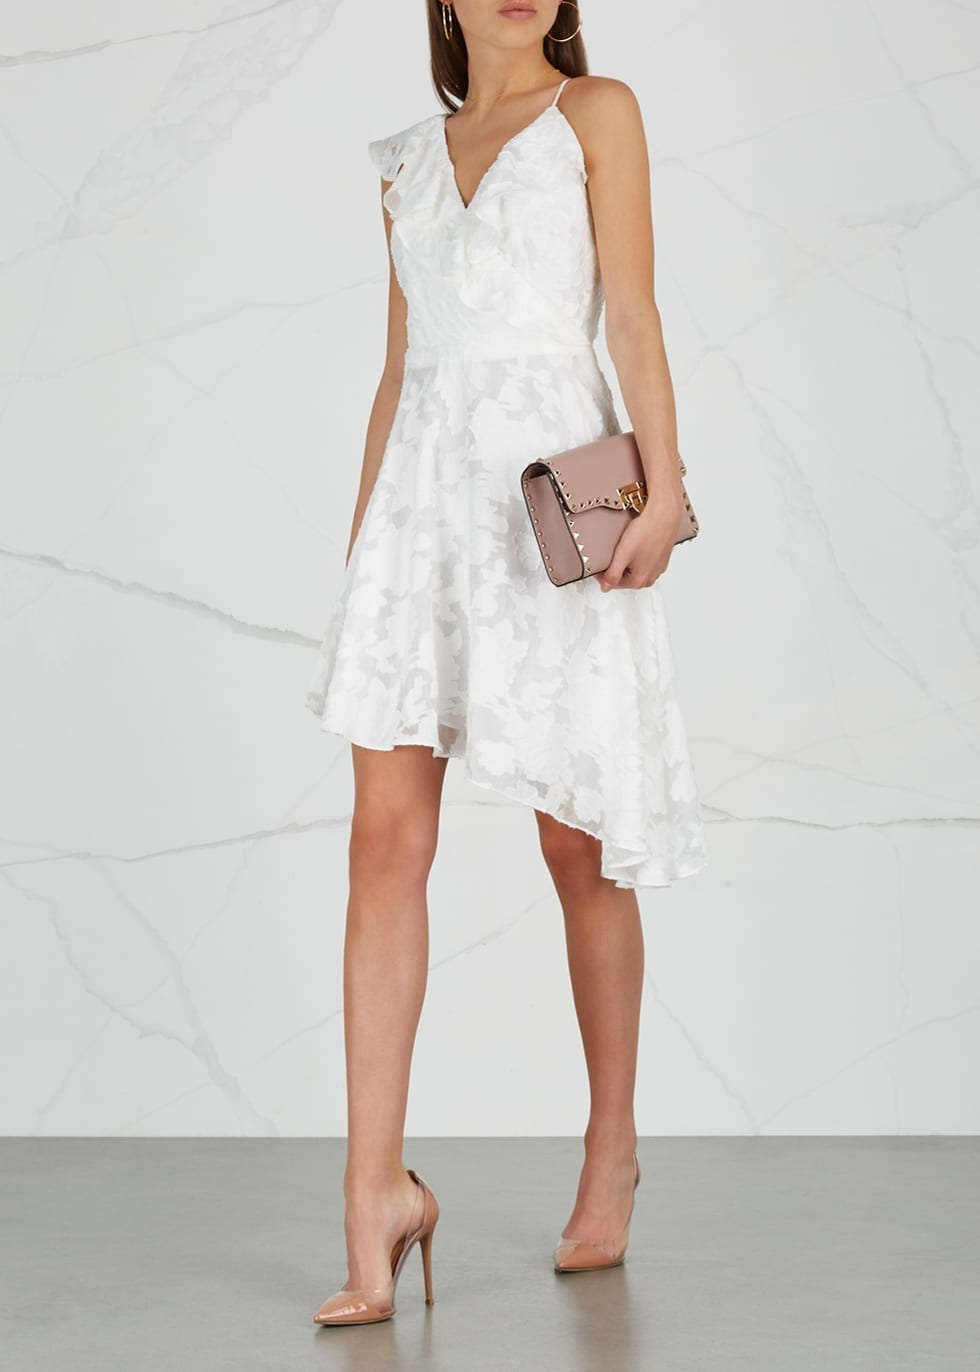 KEEPSAKE Radar Floral Devoré Organza Mini White Dress